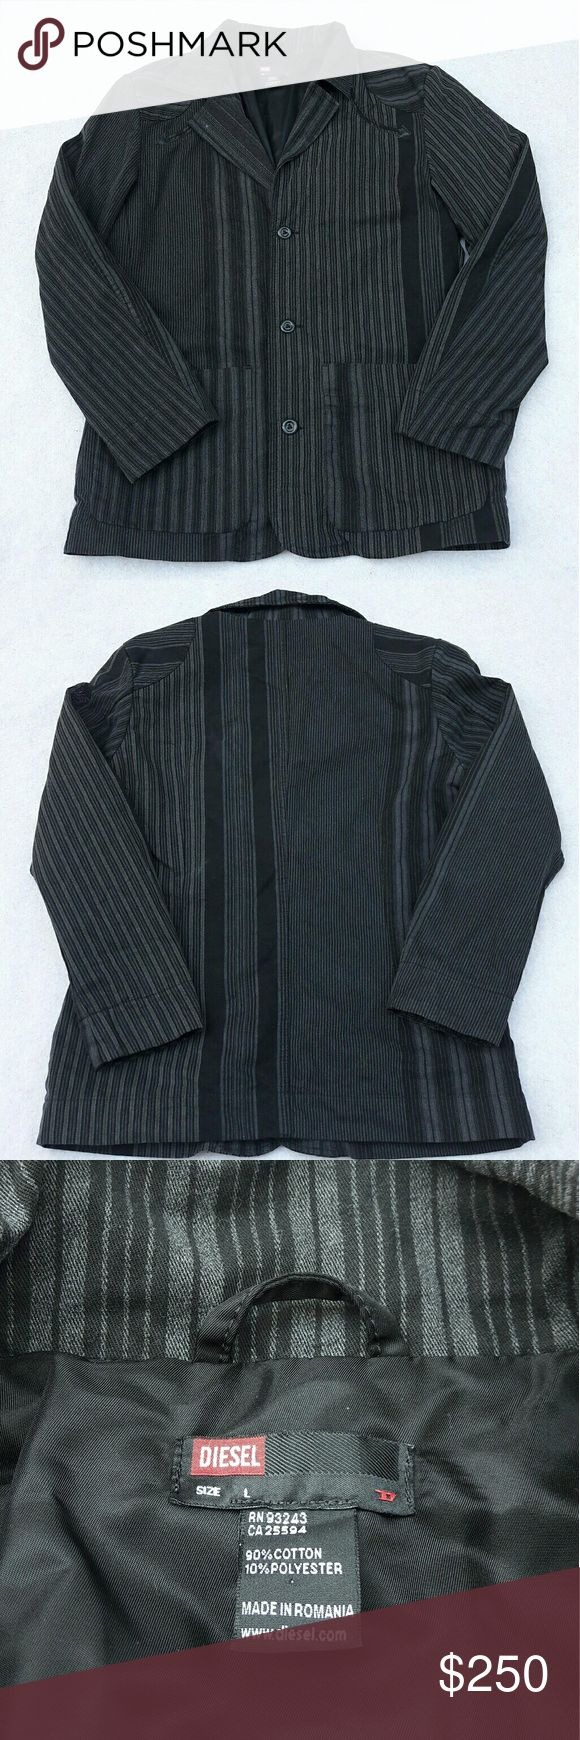 "Diesel Sport Coat Blazer Suit Diesel Mens Sz Large Black Striped 3 Button Sport Coat Suit Length:30"" Armpit to armpit:22"" Gently used with no flaws. Please see photos for exact details. Thank you for patronizing us. Diesel Jackets & Coats"